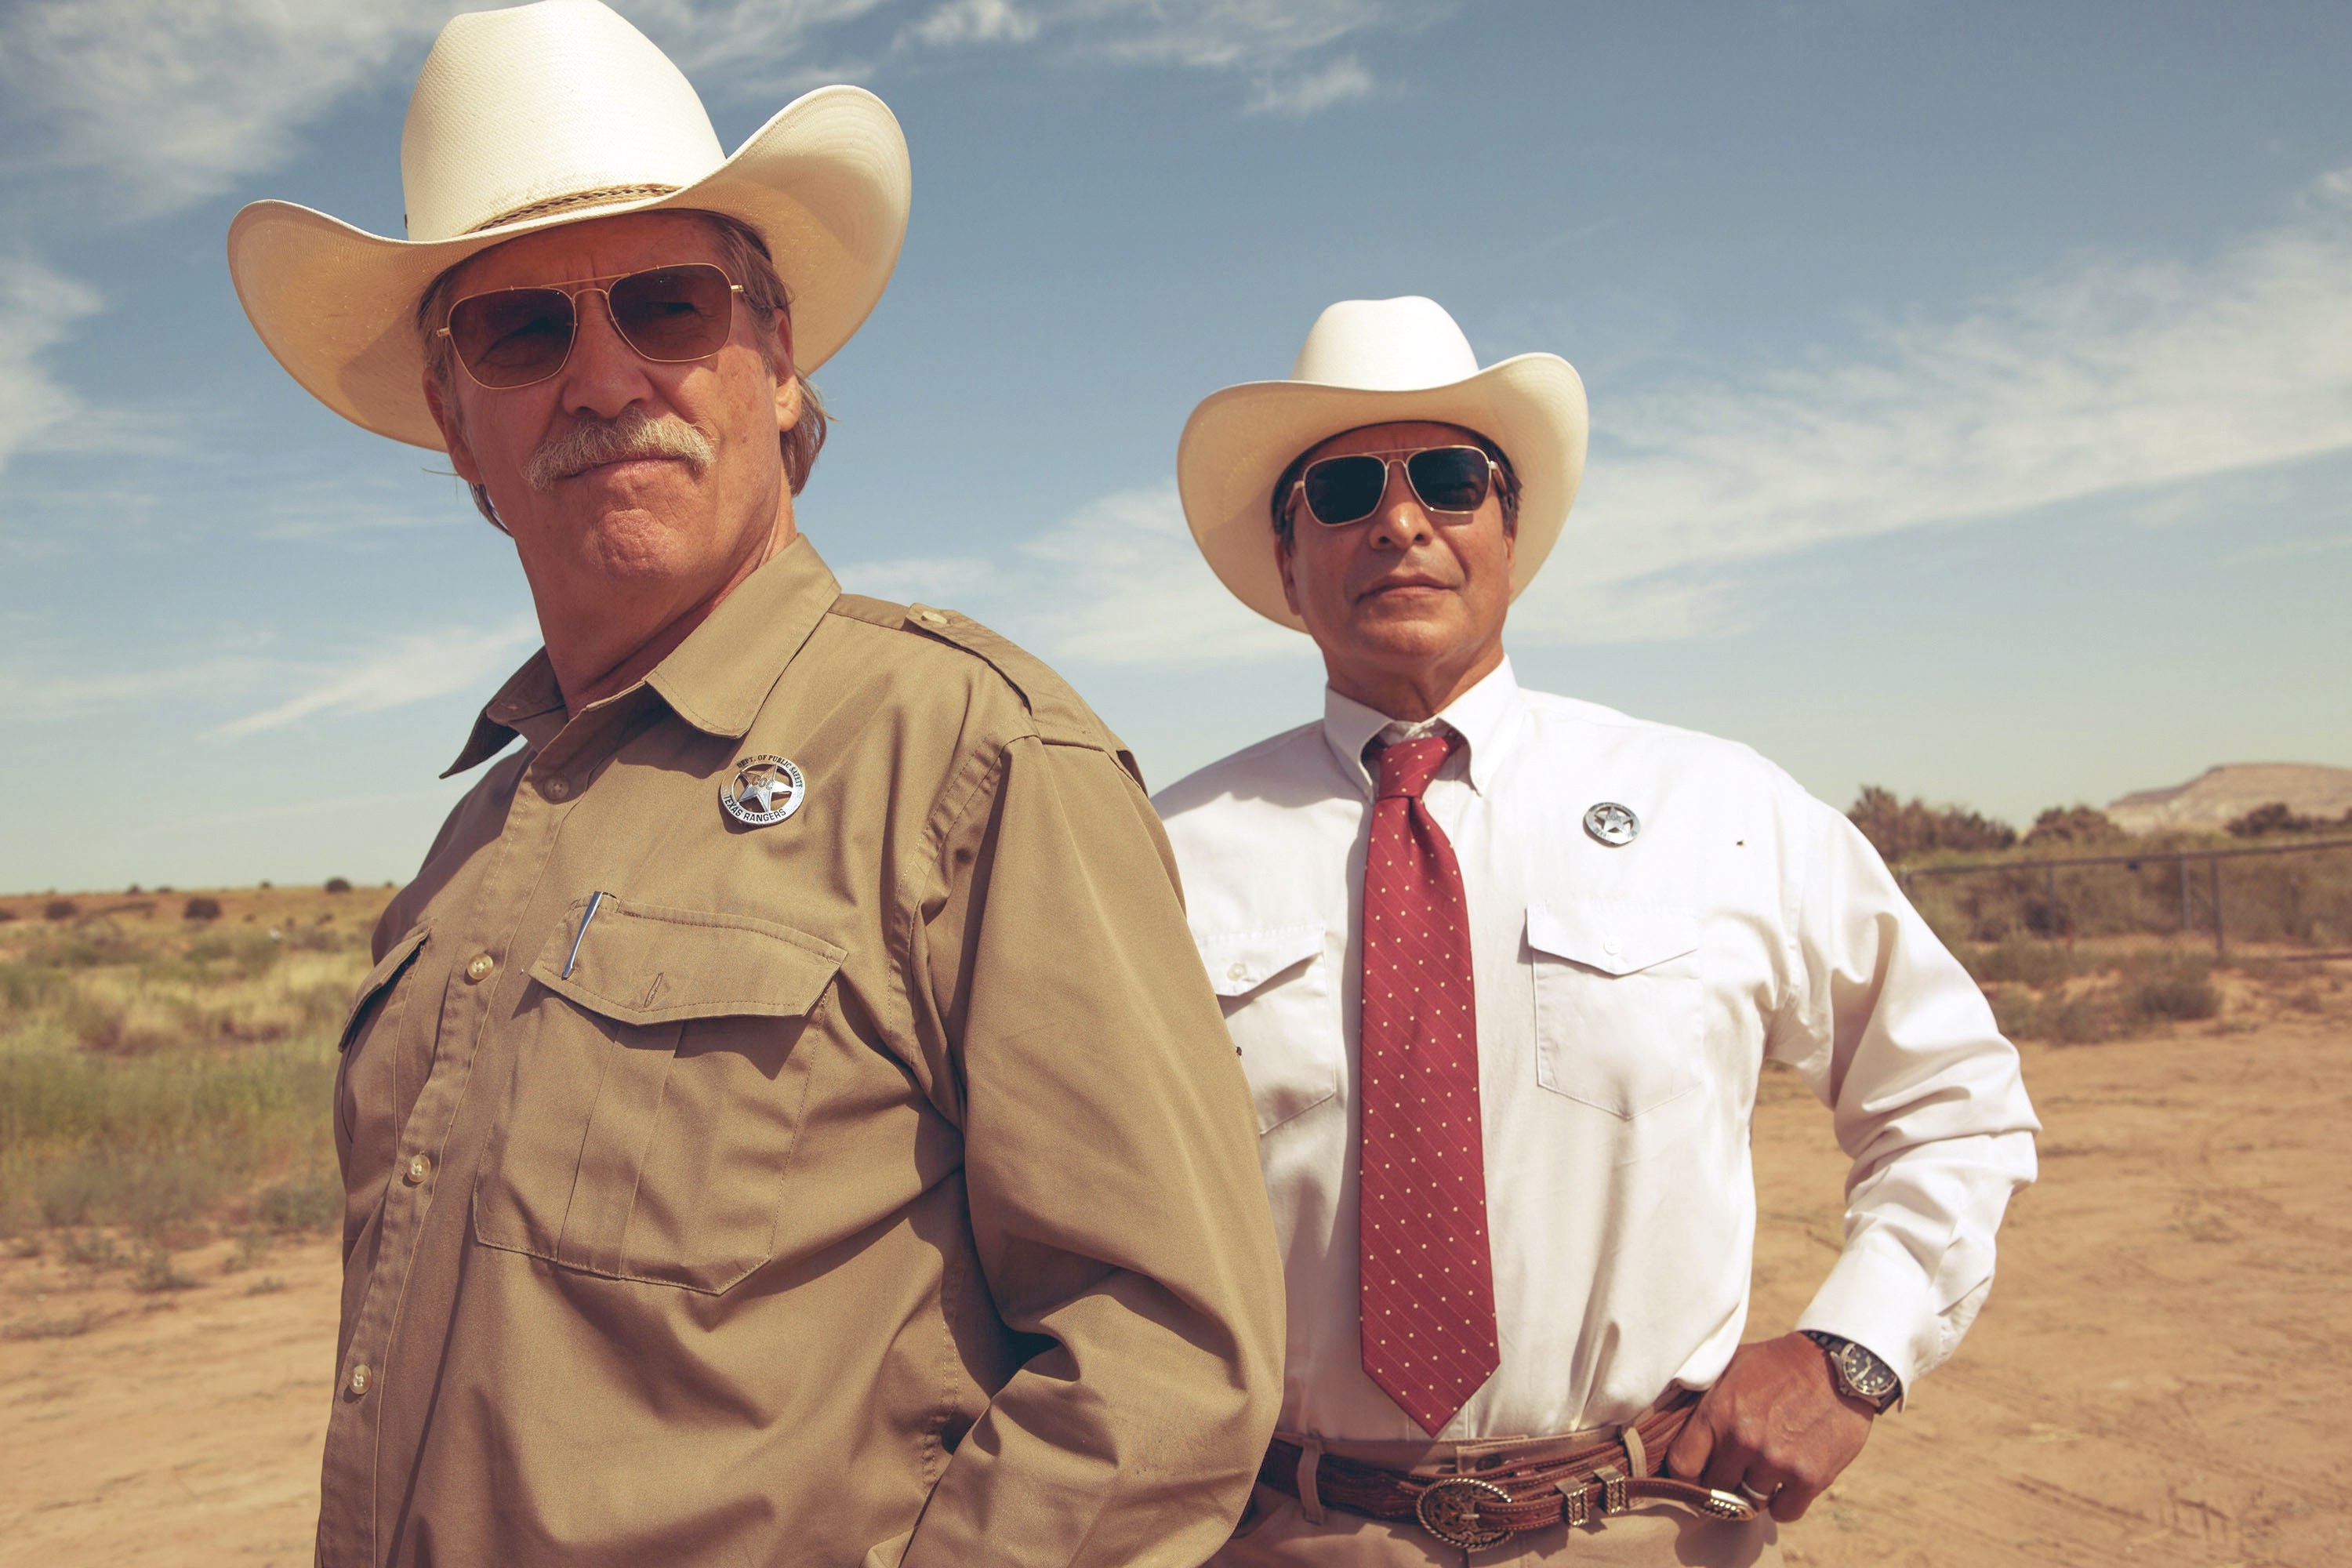 Bridges (left, with Gil Birmingham) as an aging lawman in Hell or High Water